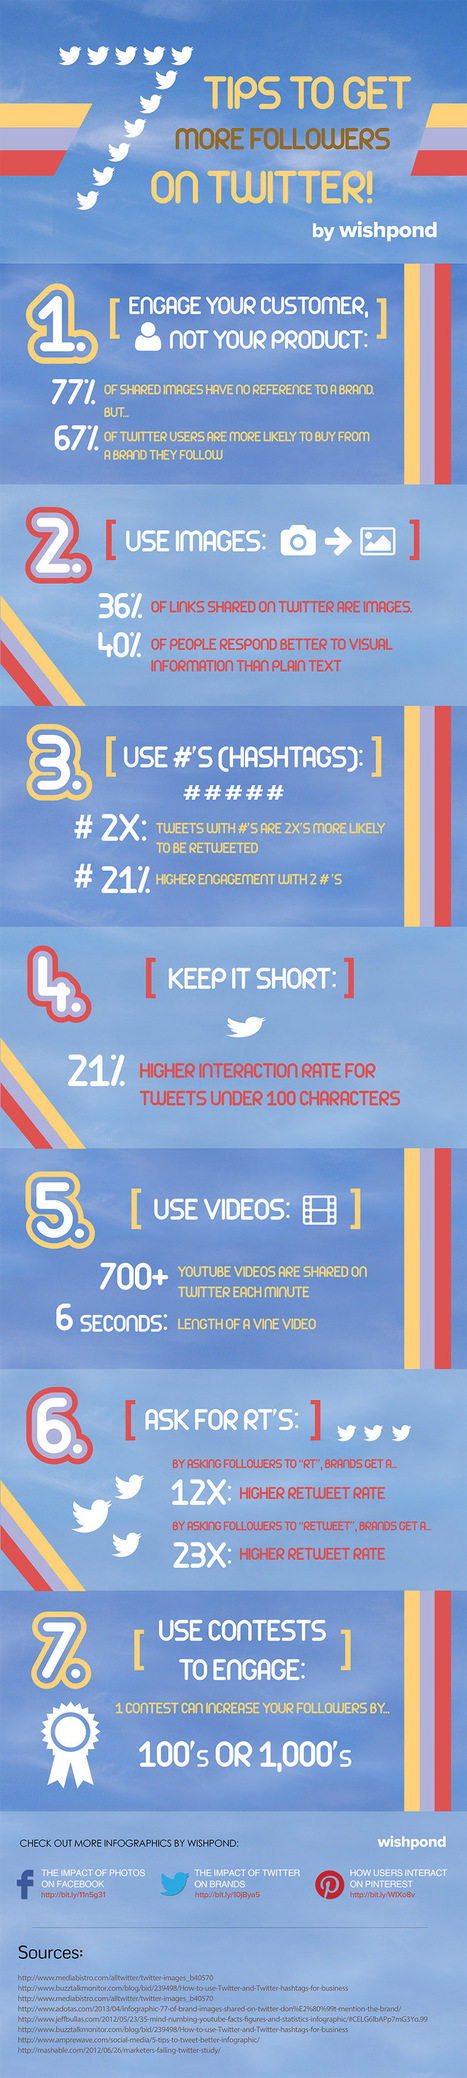 Top 7 Tips to Get More Followers on Twitter – infographic /@BerriePelser | Multimedia News | Scoop.it